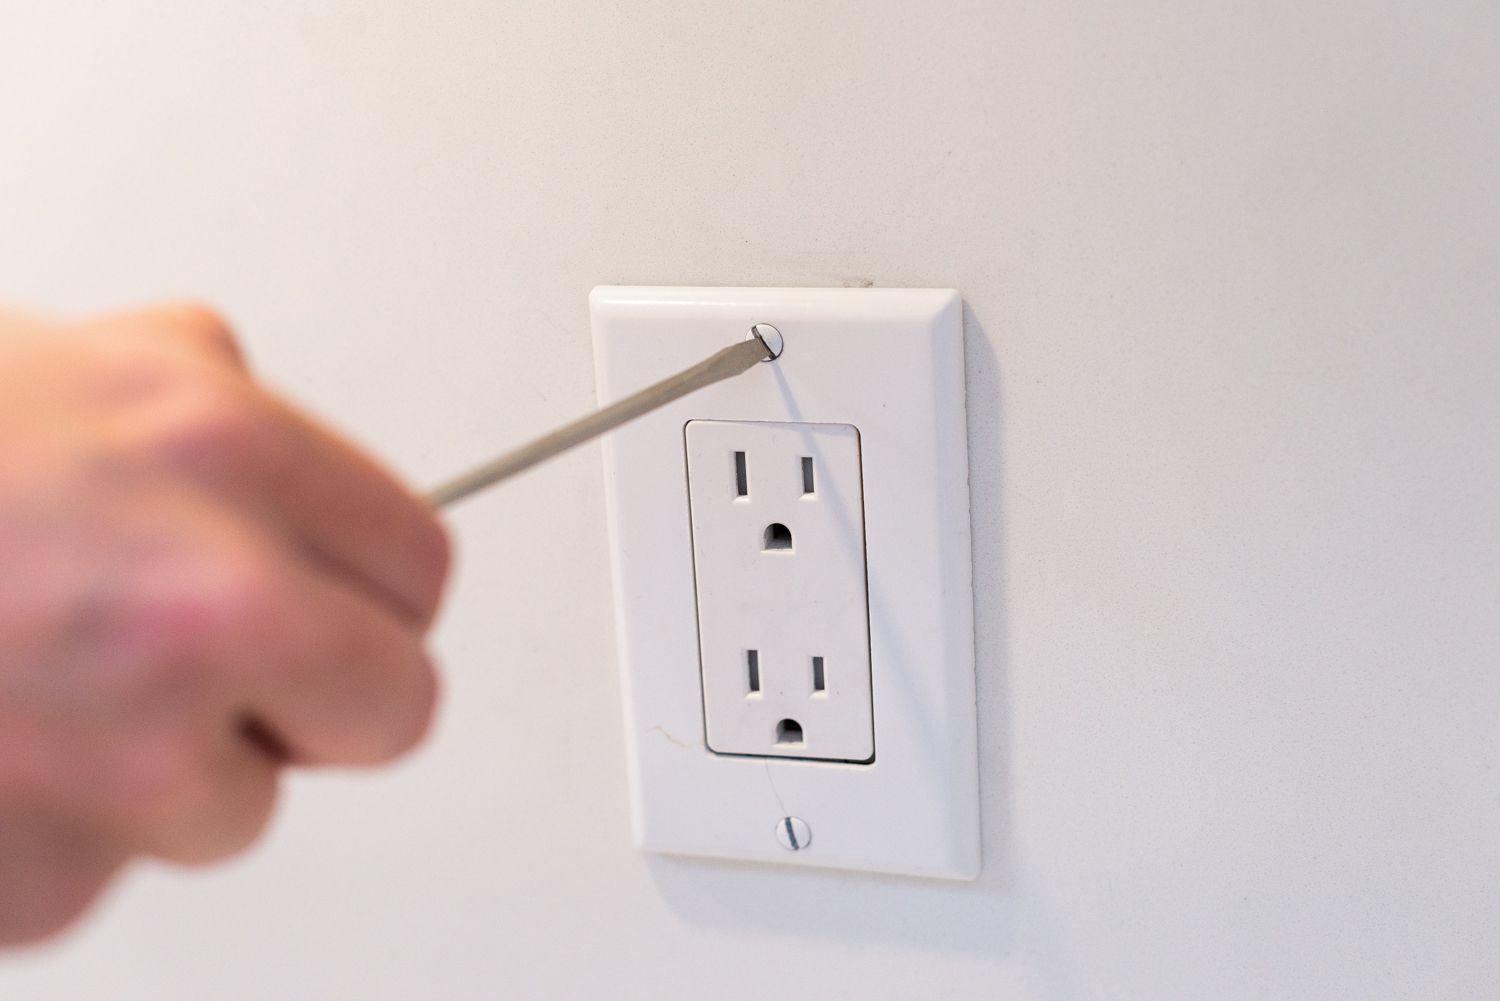 How To Wire And Install An Electrical Outlet Locations Where Should Receptacles Be